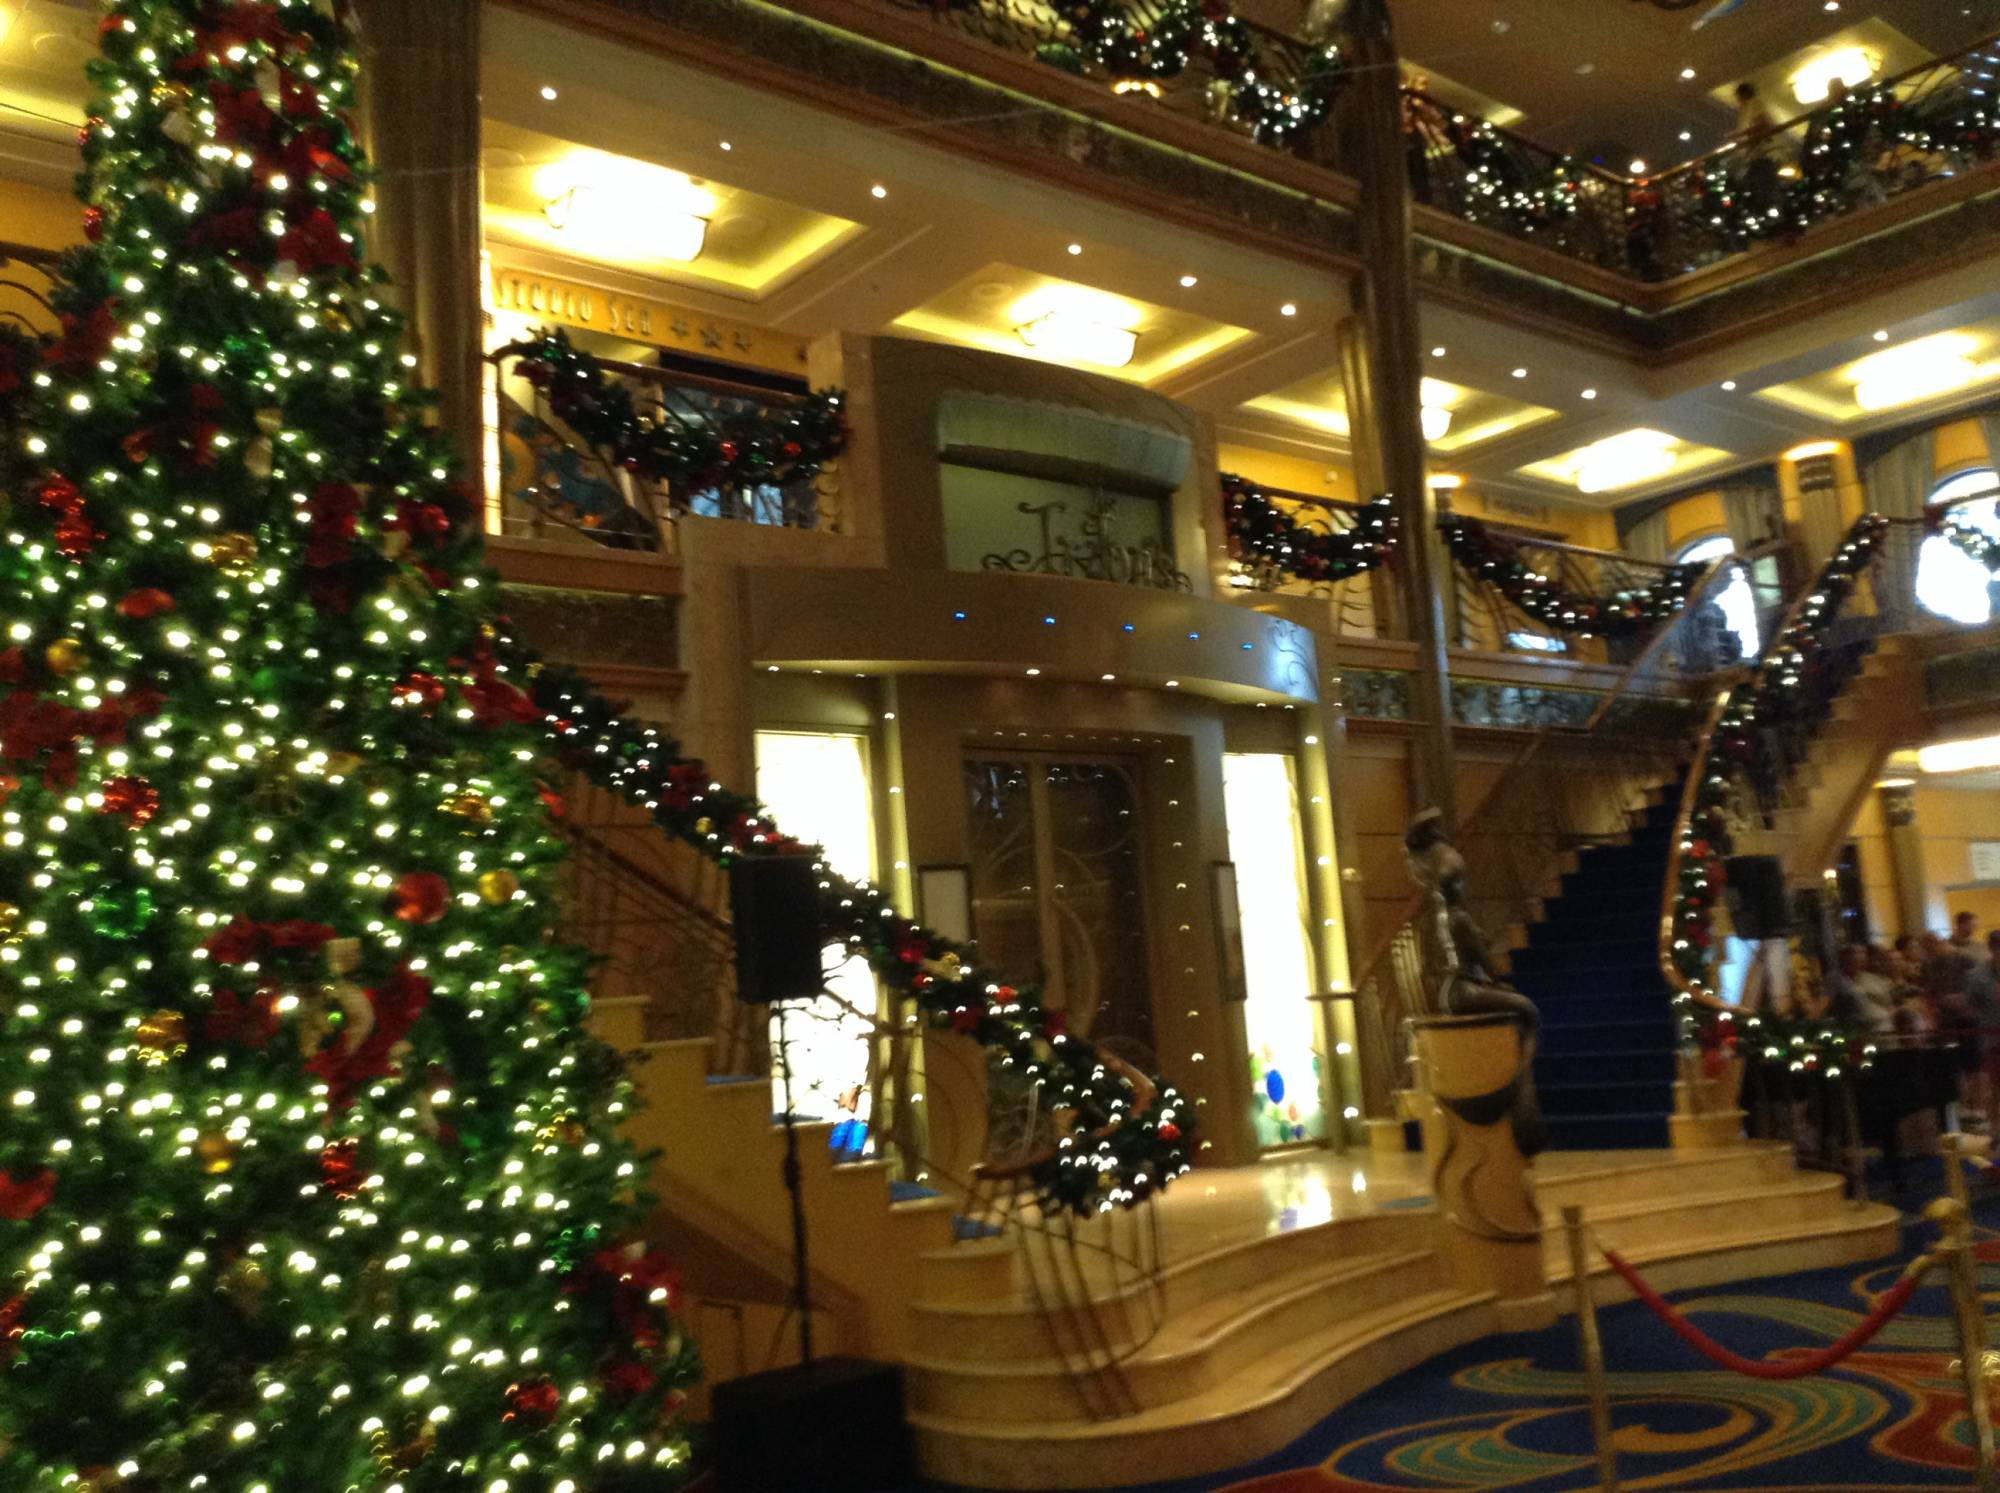 enjoy a very merrytime cruise at the holidays onboard the disney cruise line - When Do Cruise Ships Decorated For Christmas